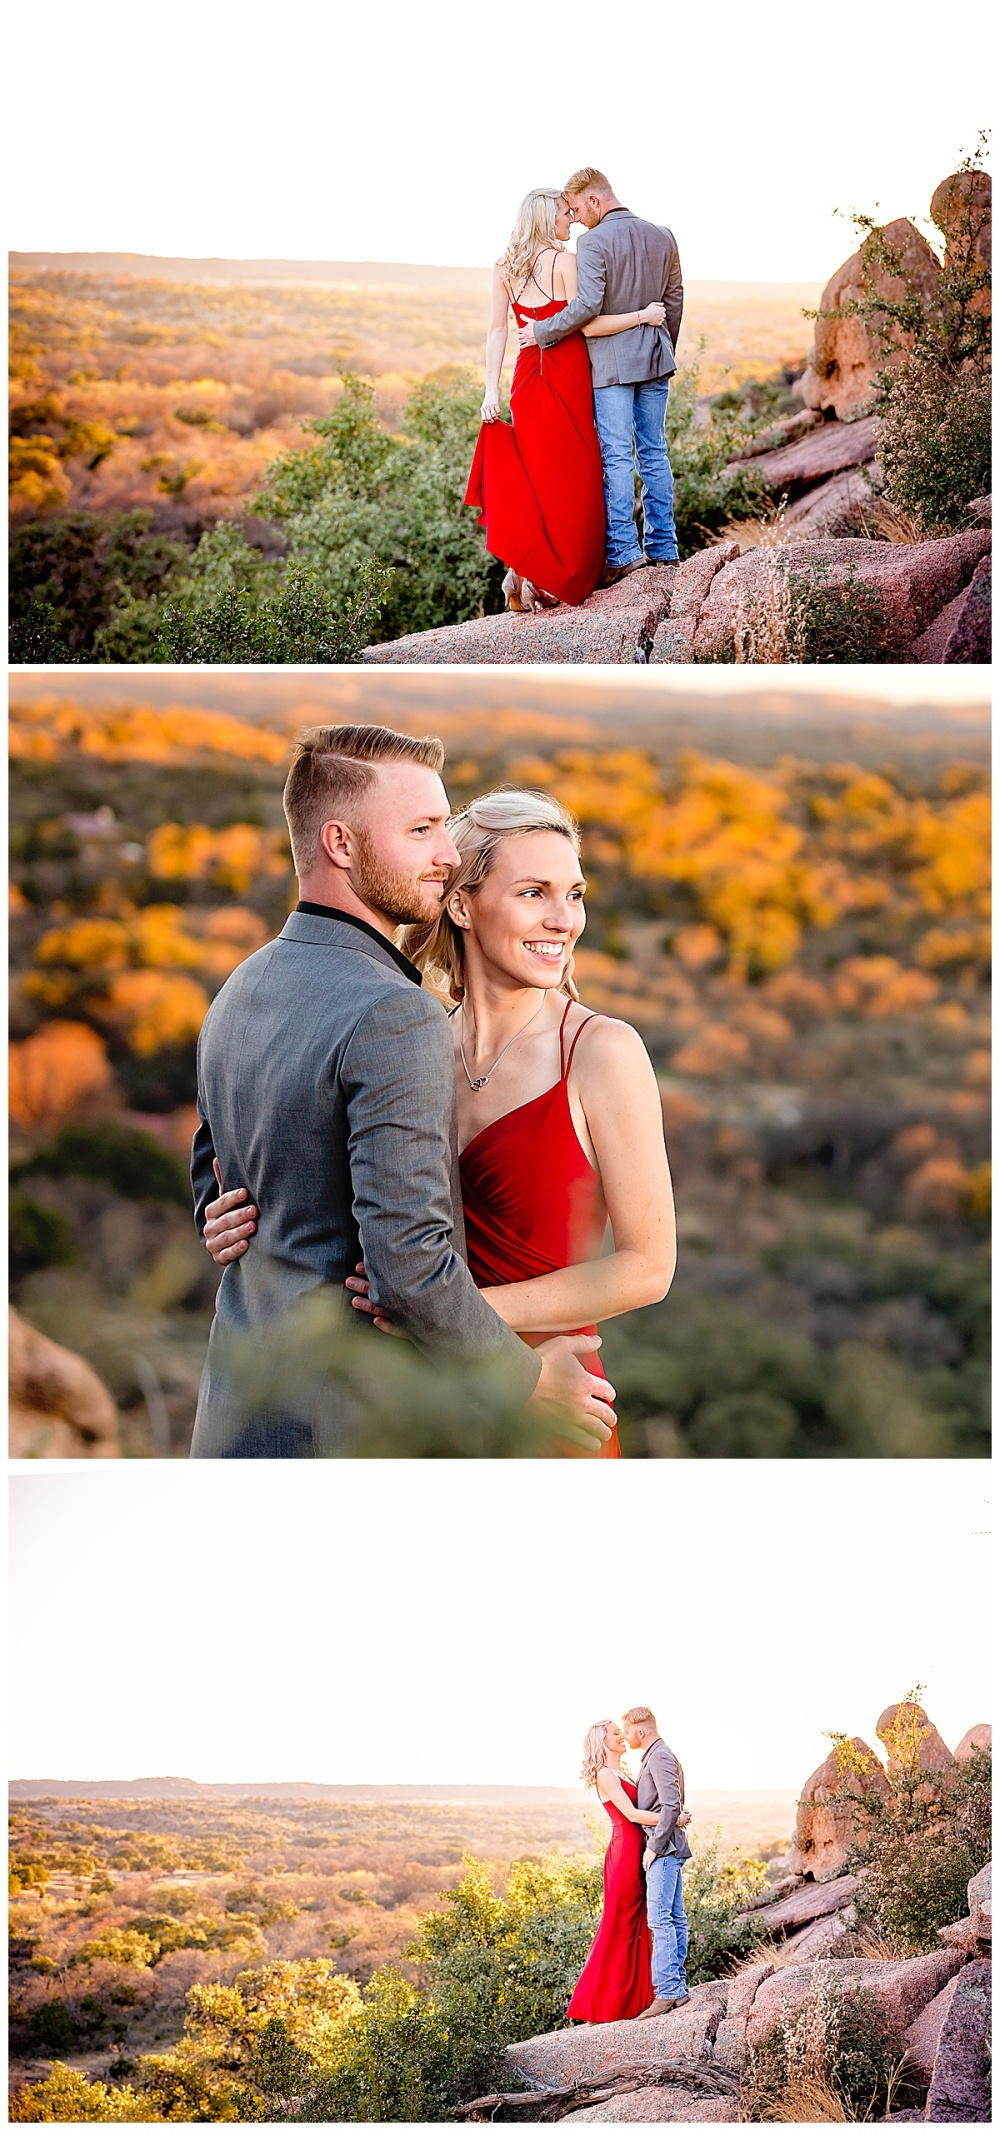 South-Texas-Wedding-Photographer-Engagement-Photos-Enchanted-Rock-Fredericksburg-Sunset-Couples-Carly-Barton-Photography_0008.jpg